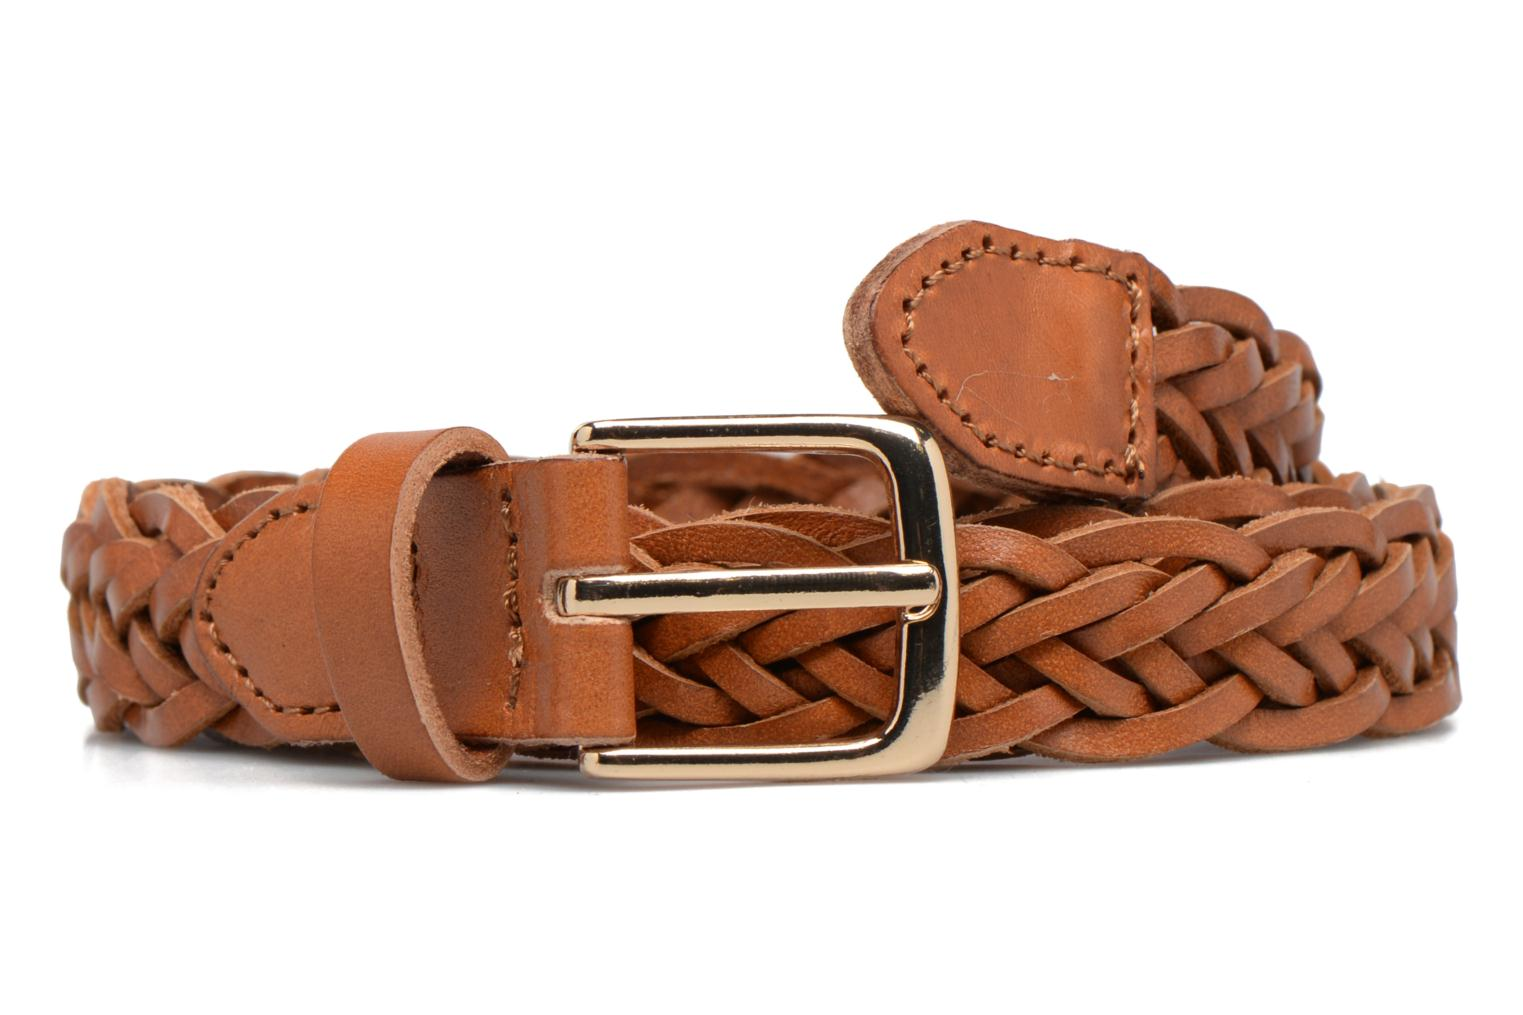 Jussy Leather Jeans belt 25mm Cognac